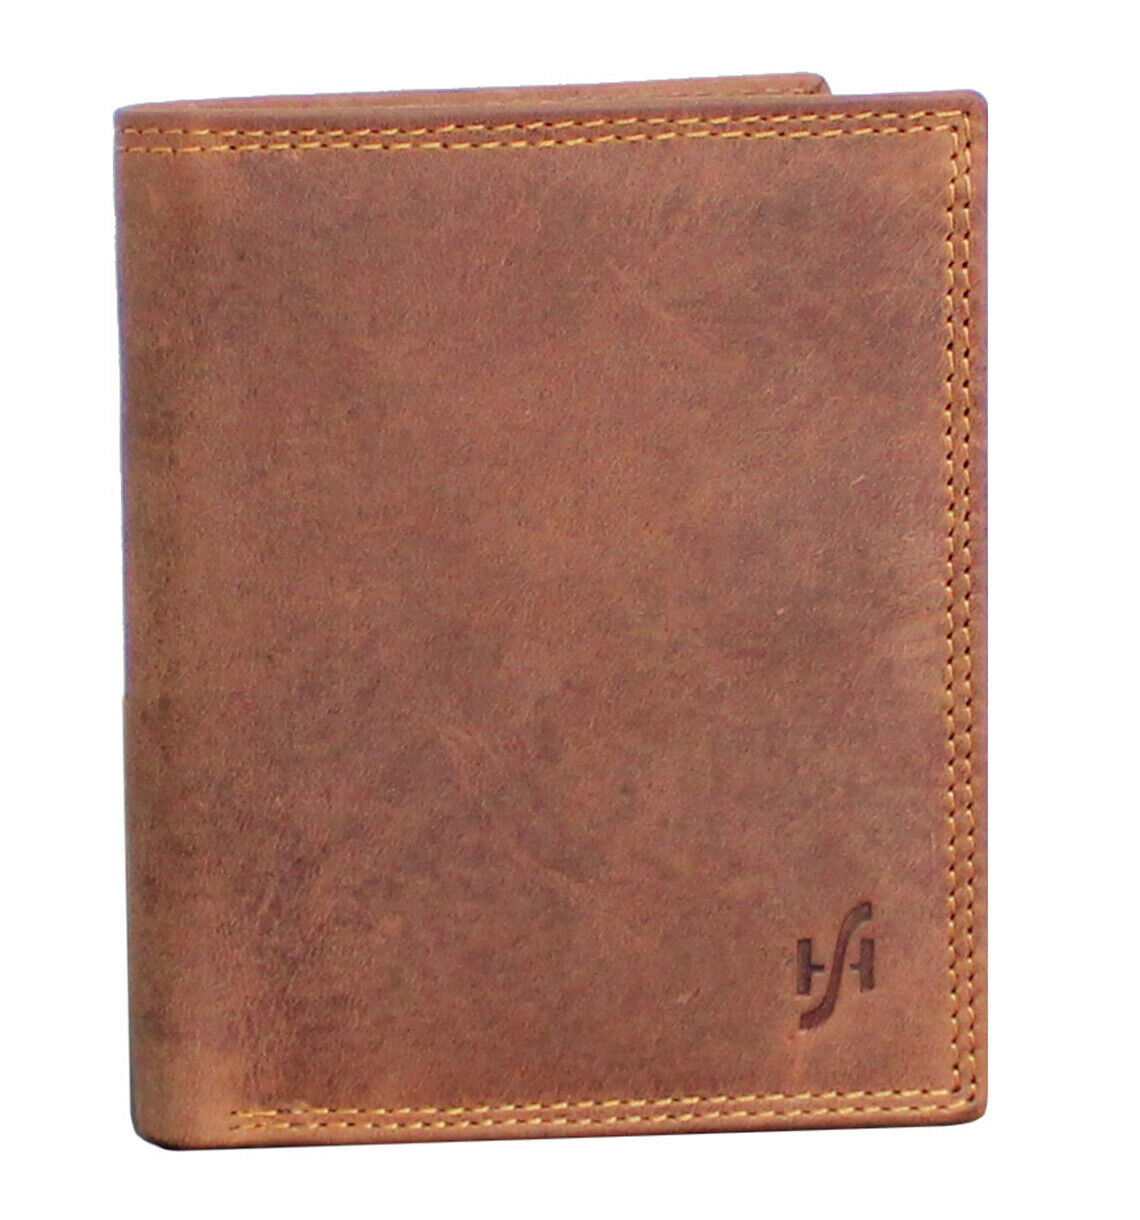 Mens RFID Blocking Hunter Leather Wallet Brown